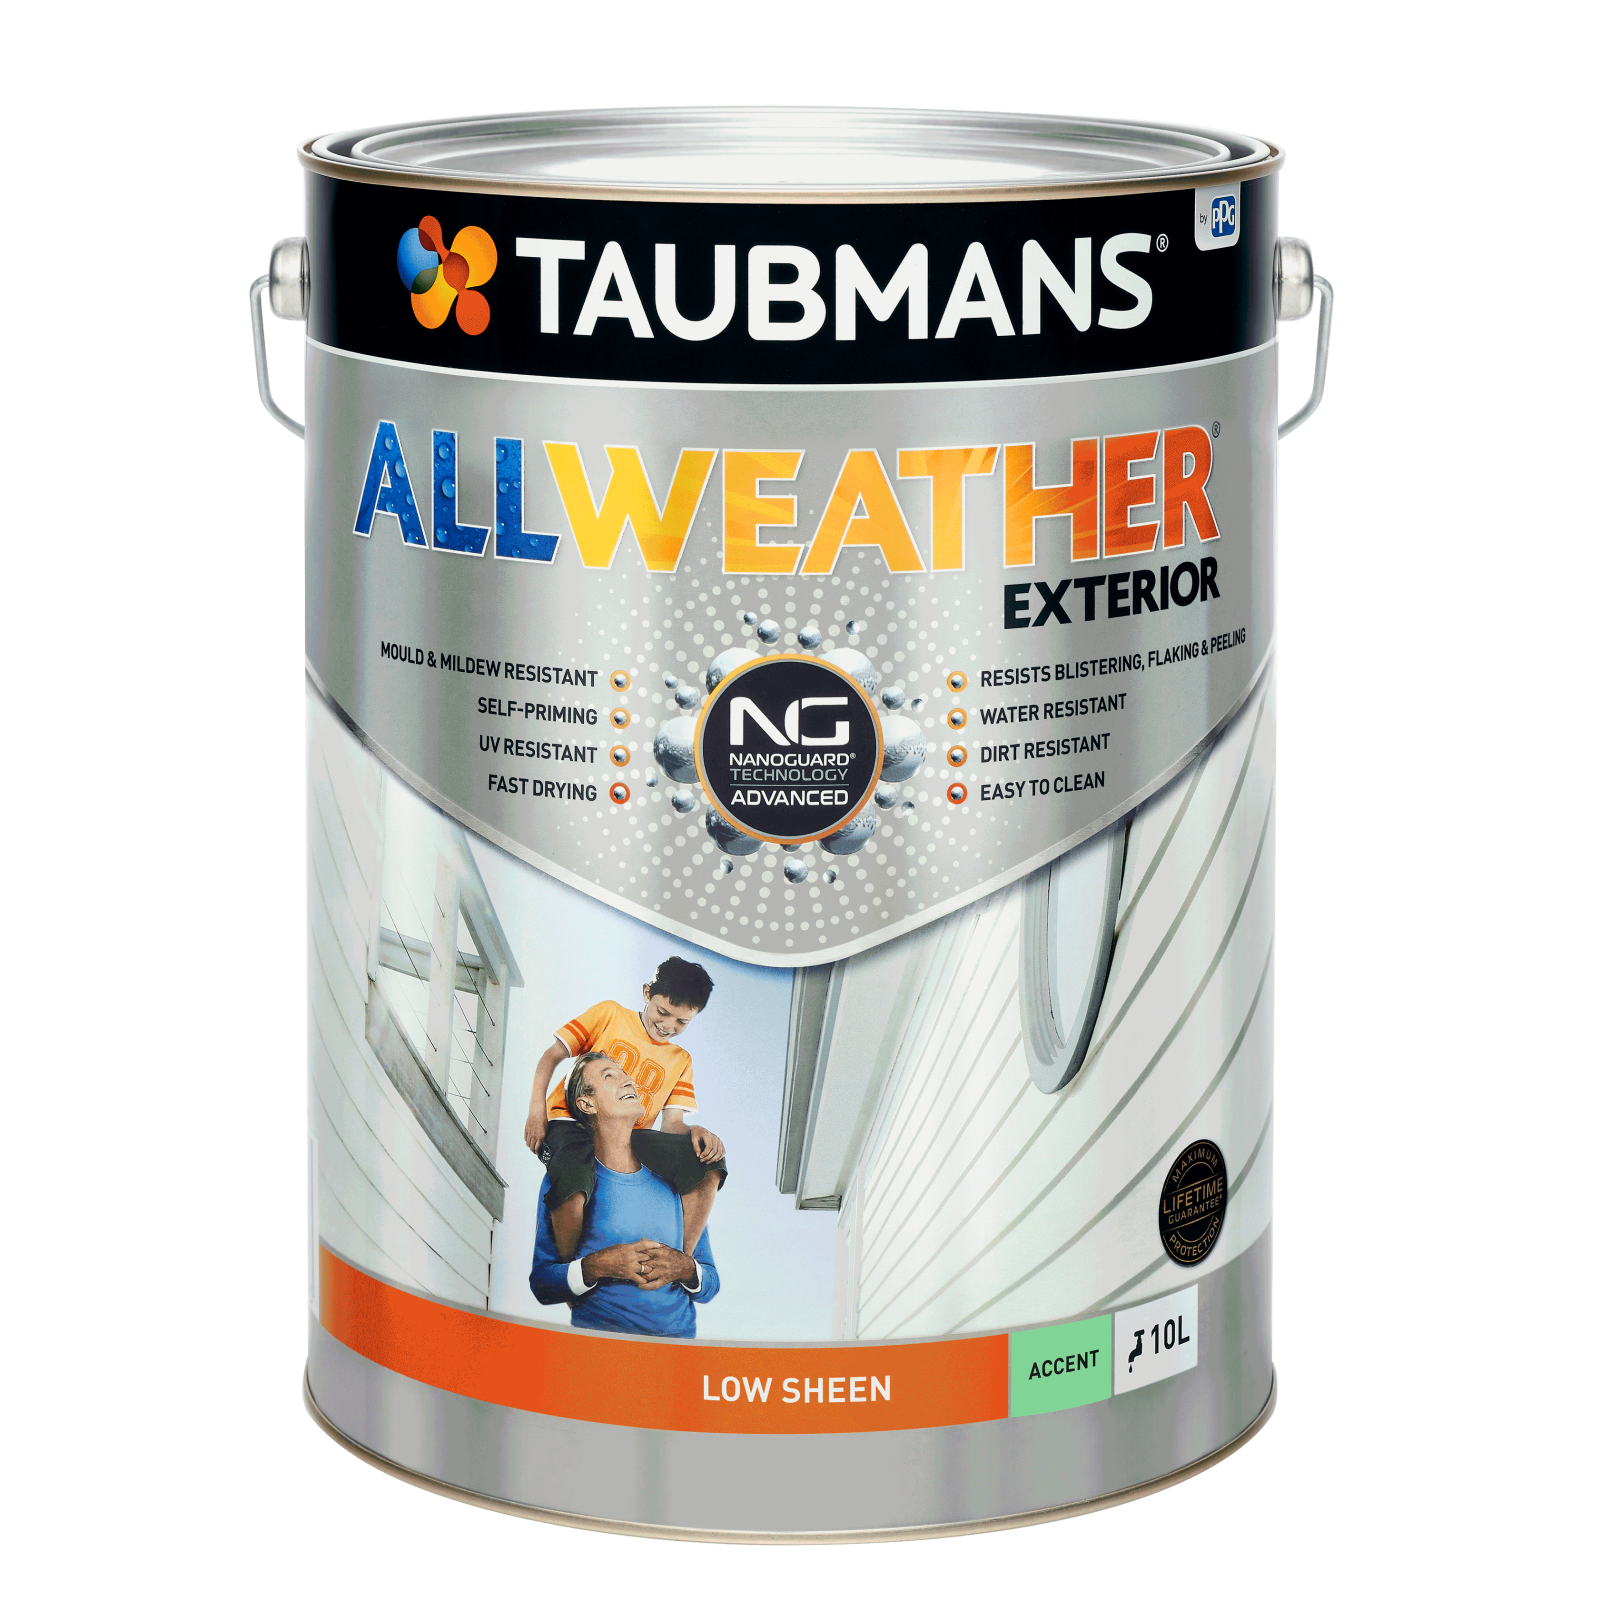 Taubmans 10L Accent Low Sheen All Weather Exterior Paint